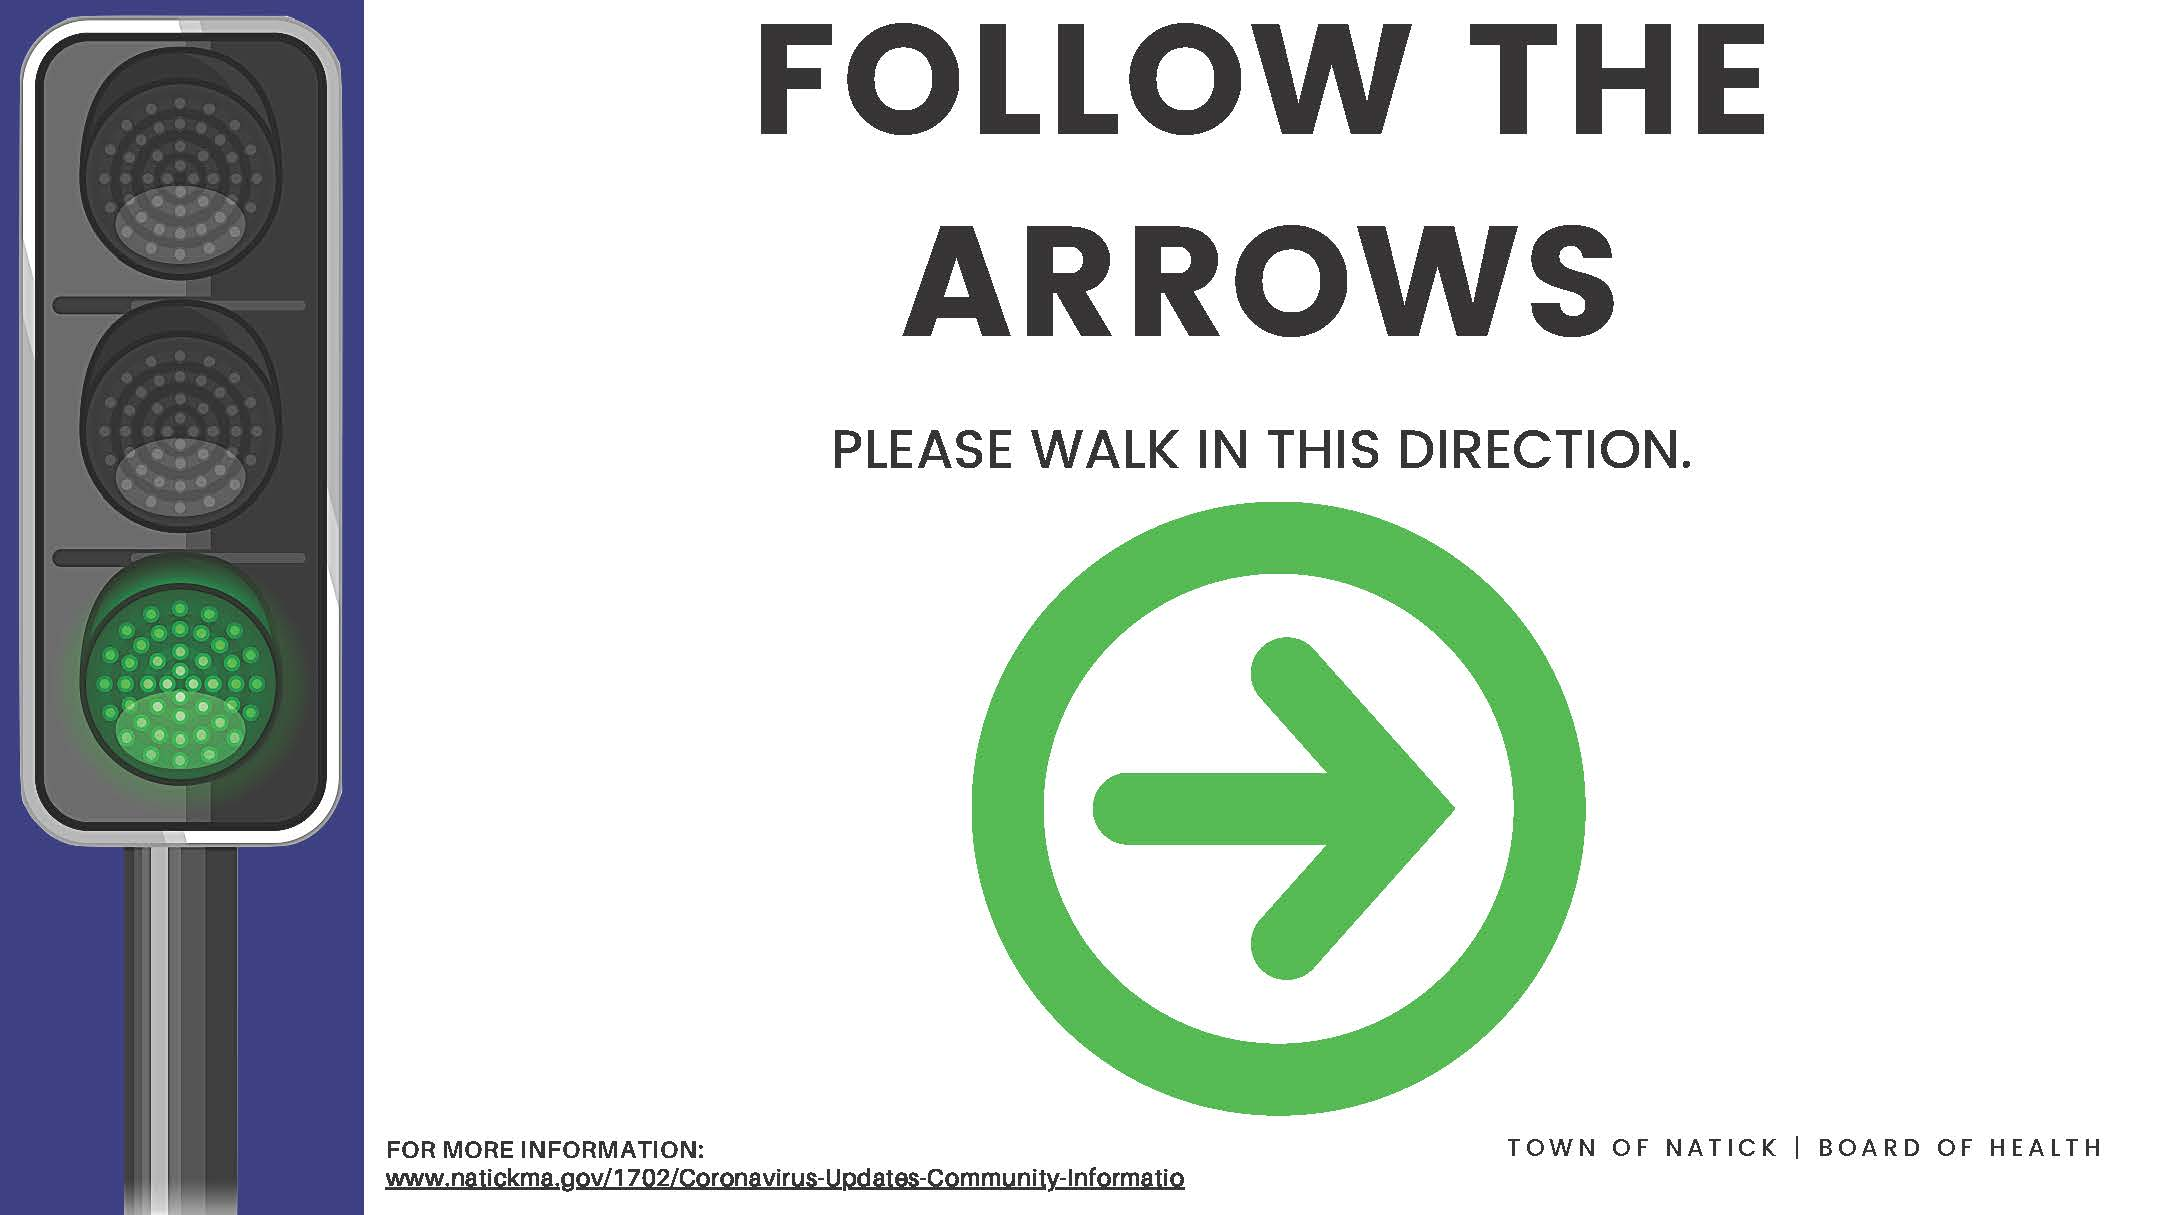 Follow the arrows Poster